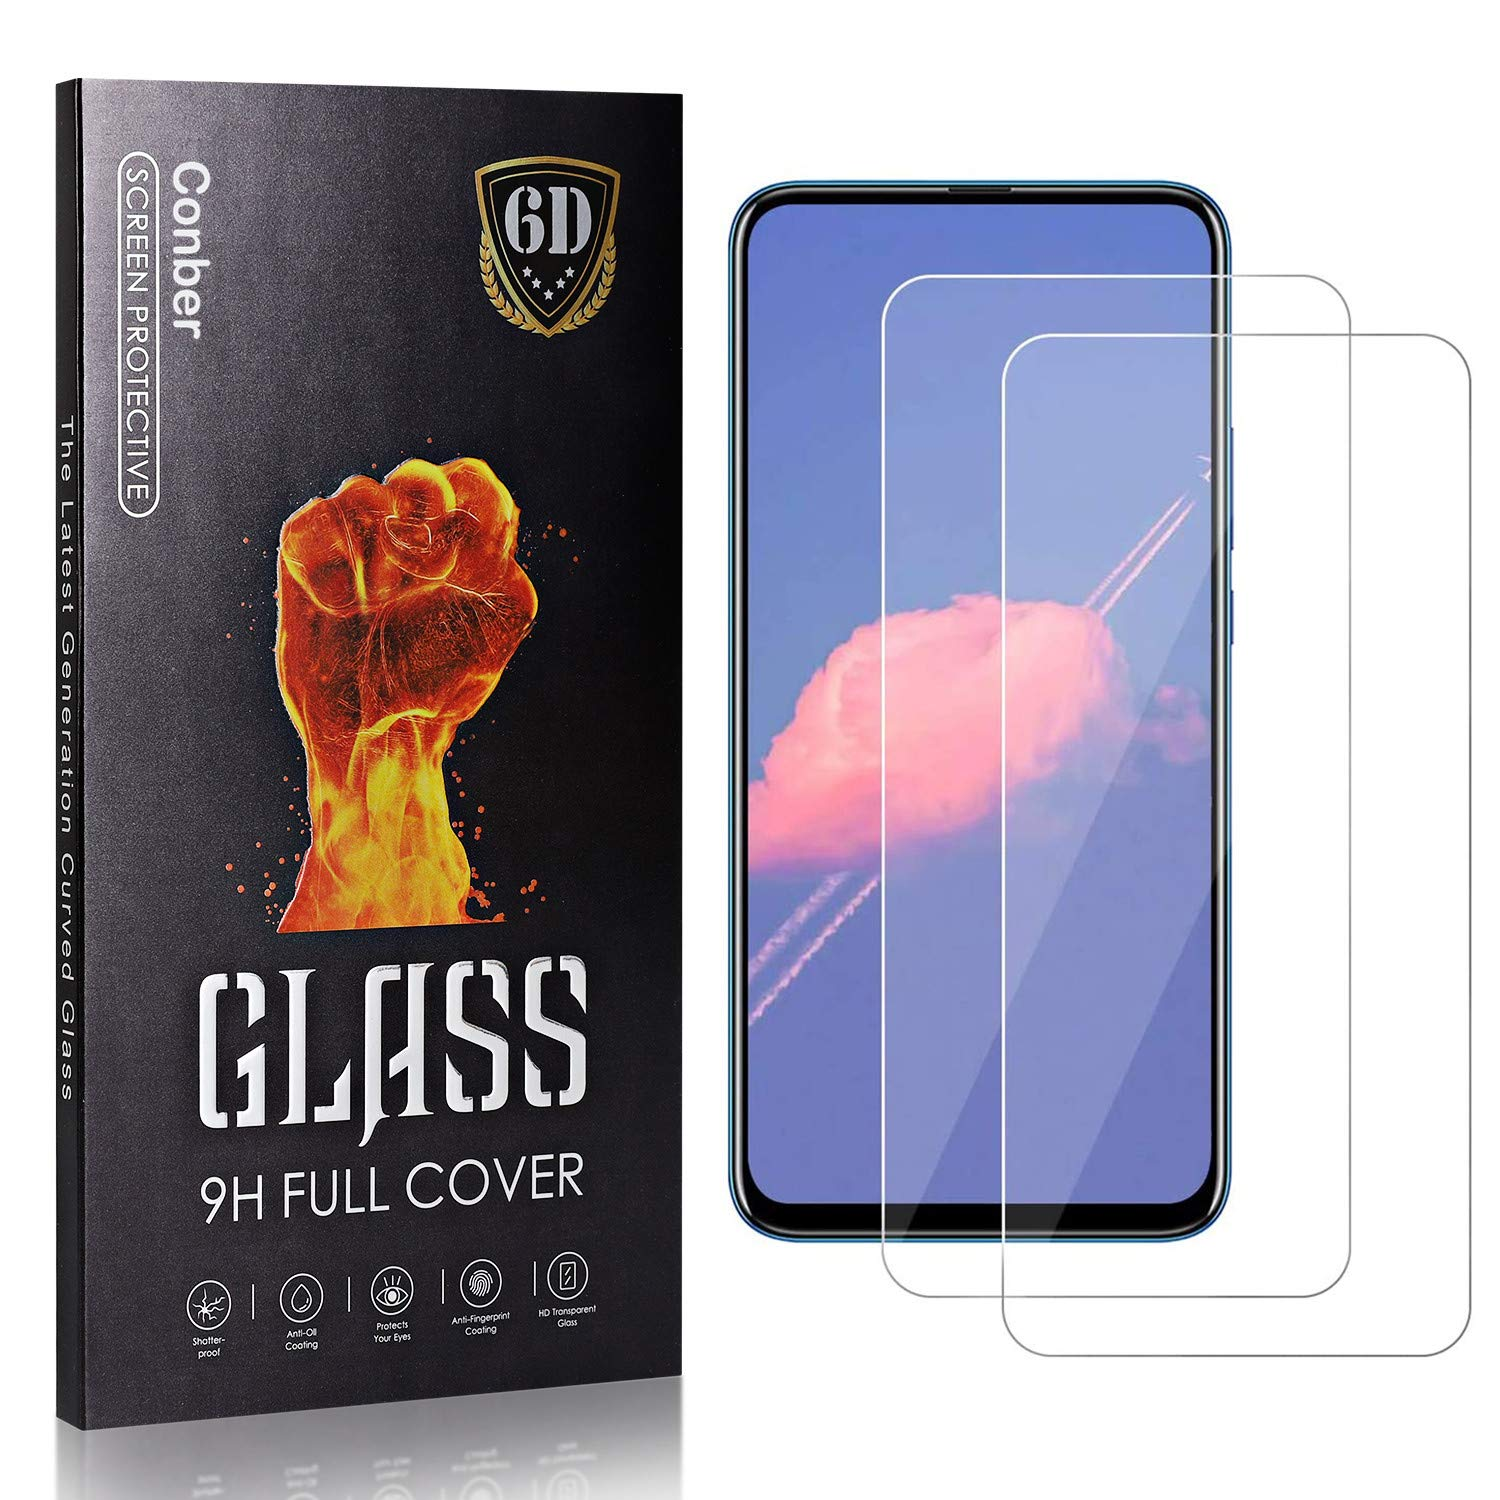 Conber 2 Tampa Mall Pack Screen Protector for Pro Huawei Temper 9X Honor Don't miss the campaign